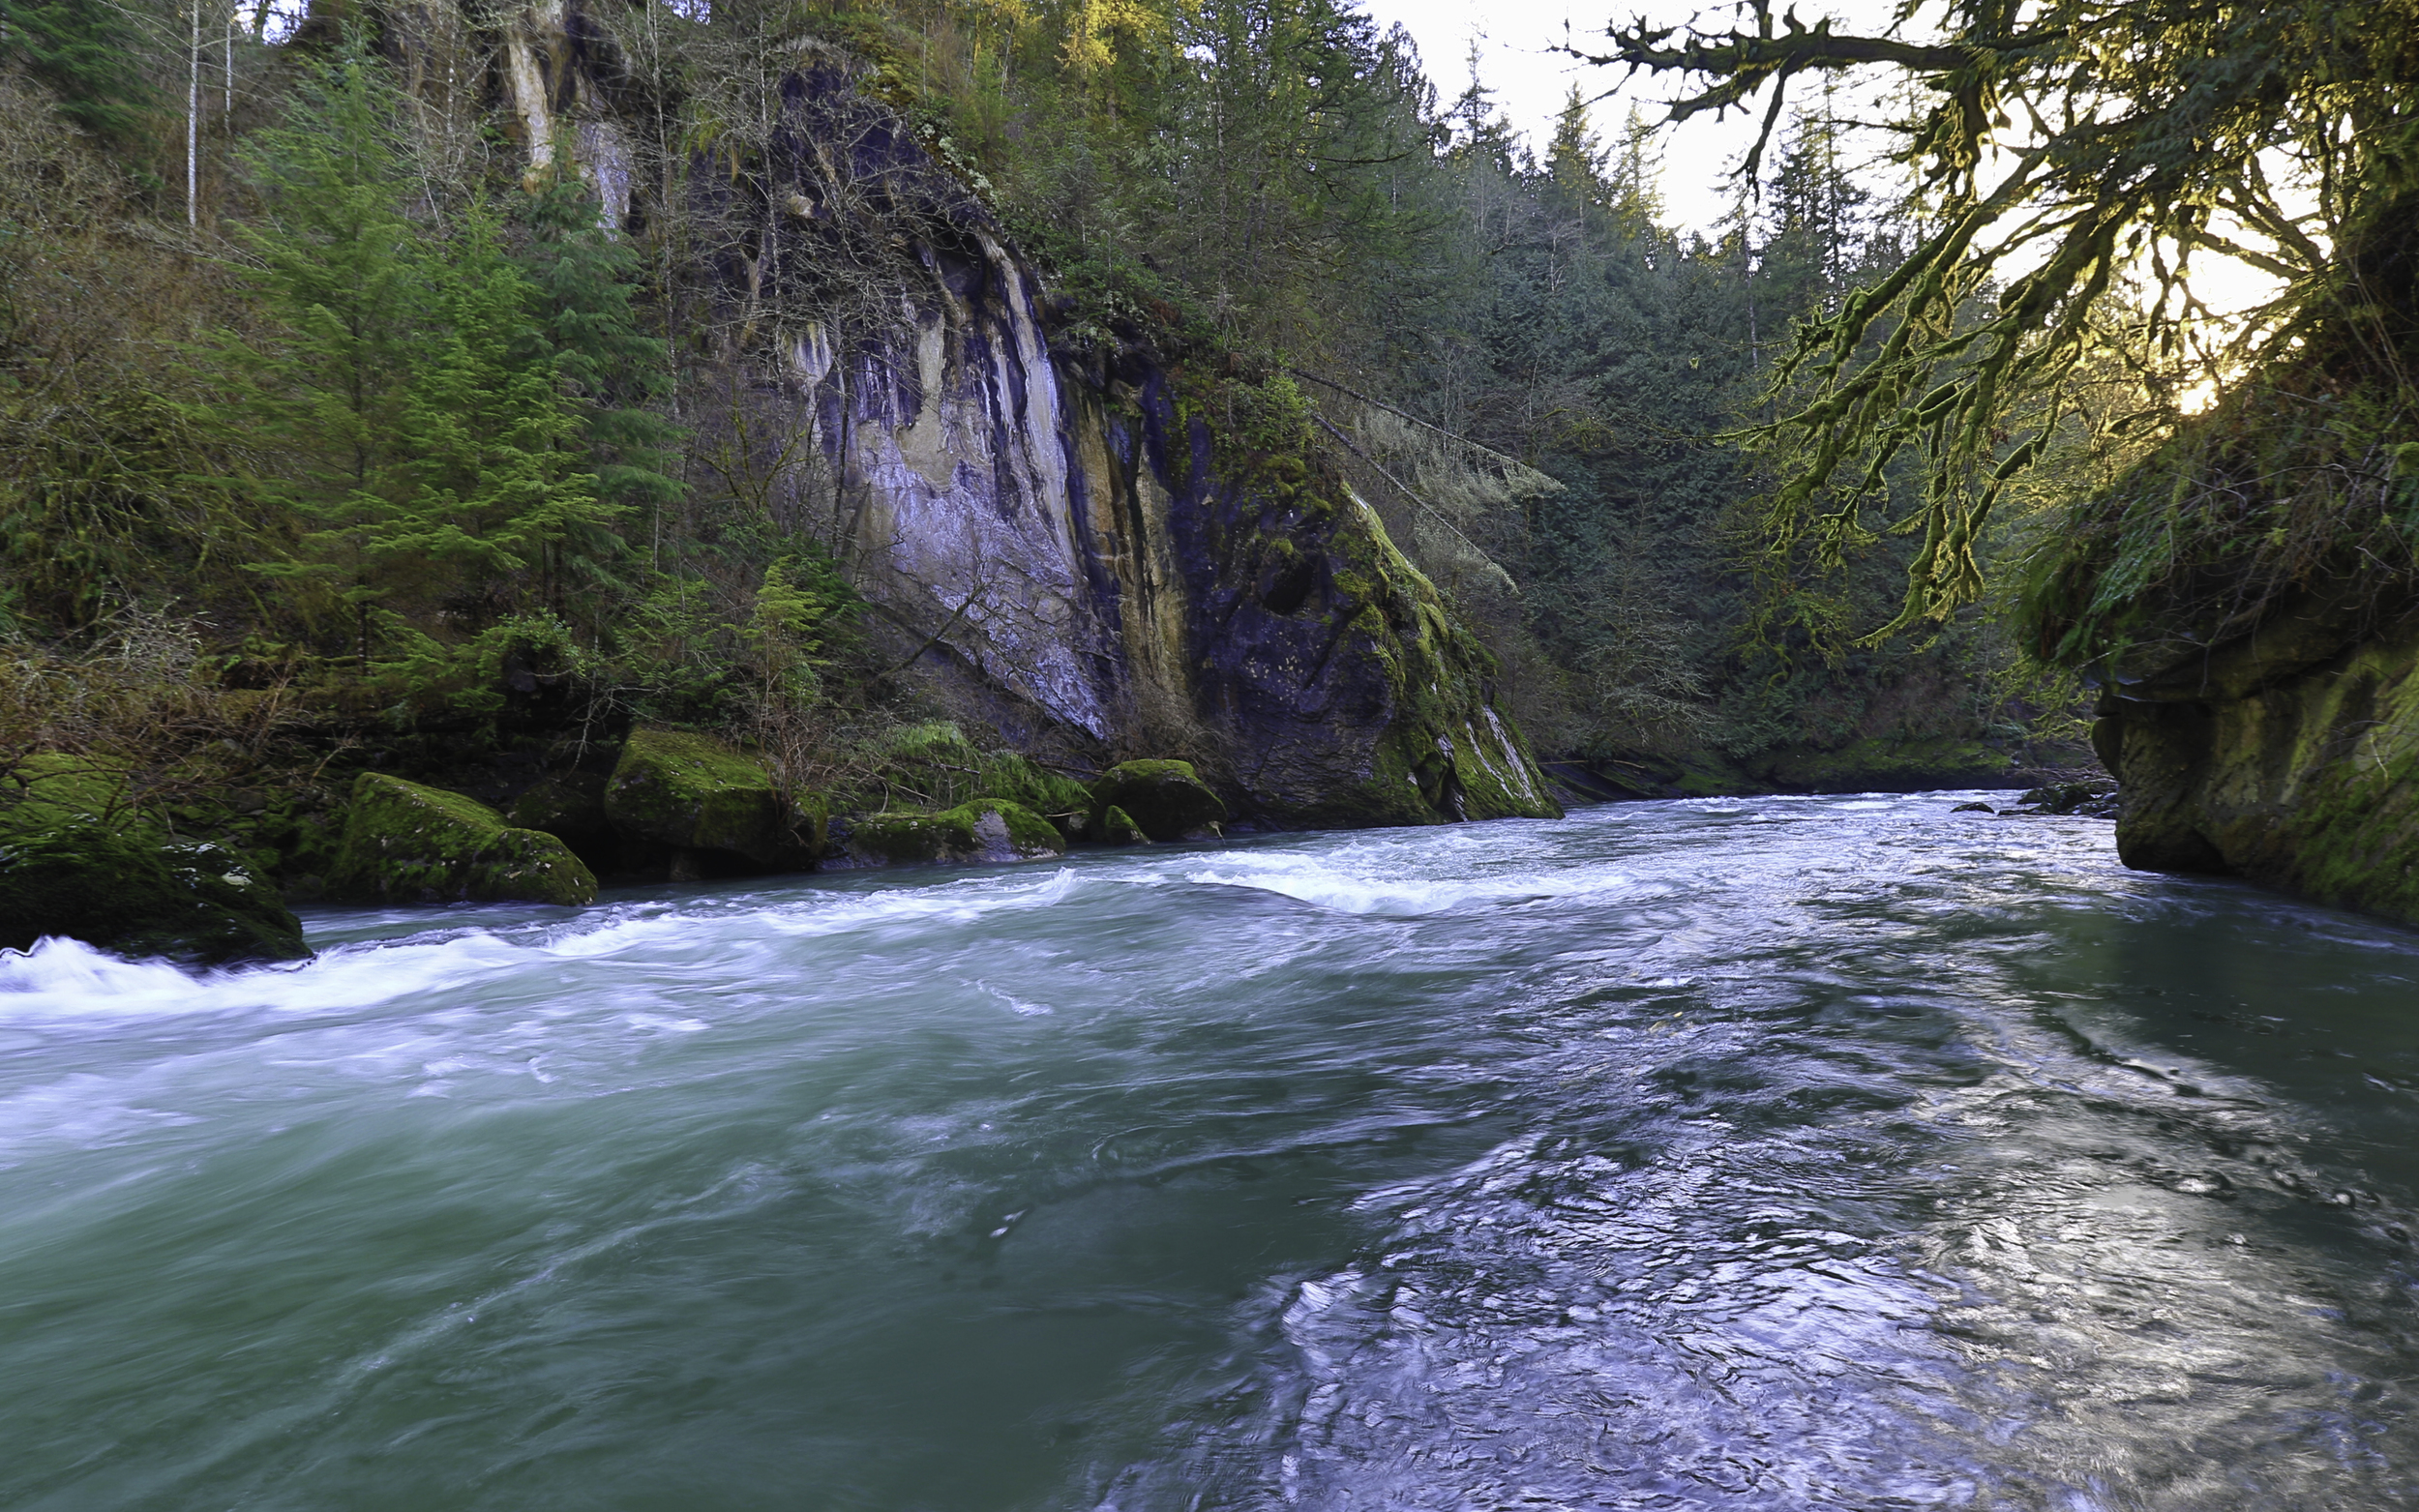 Evening on the Green River Gorge